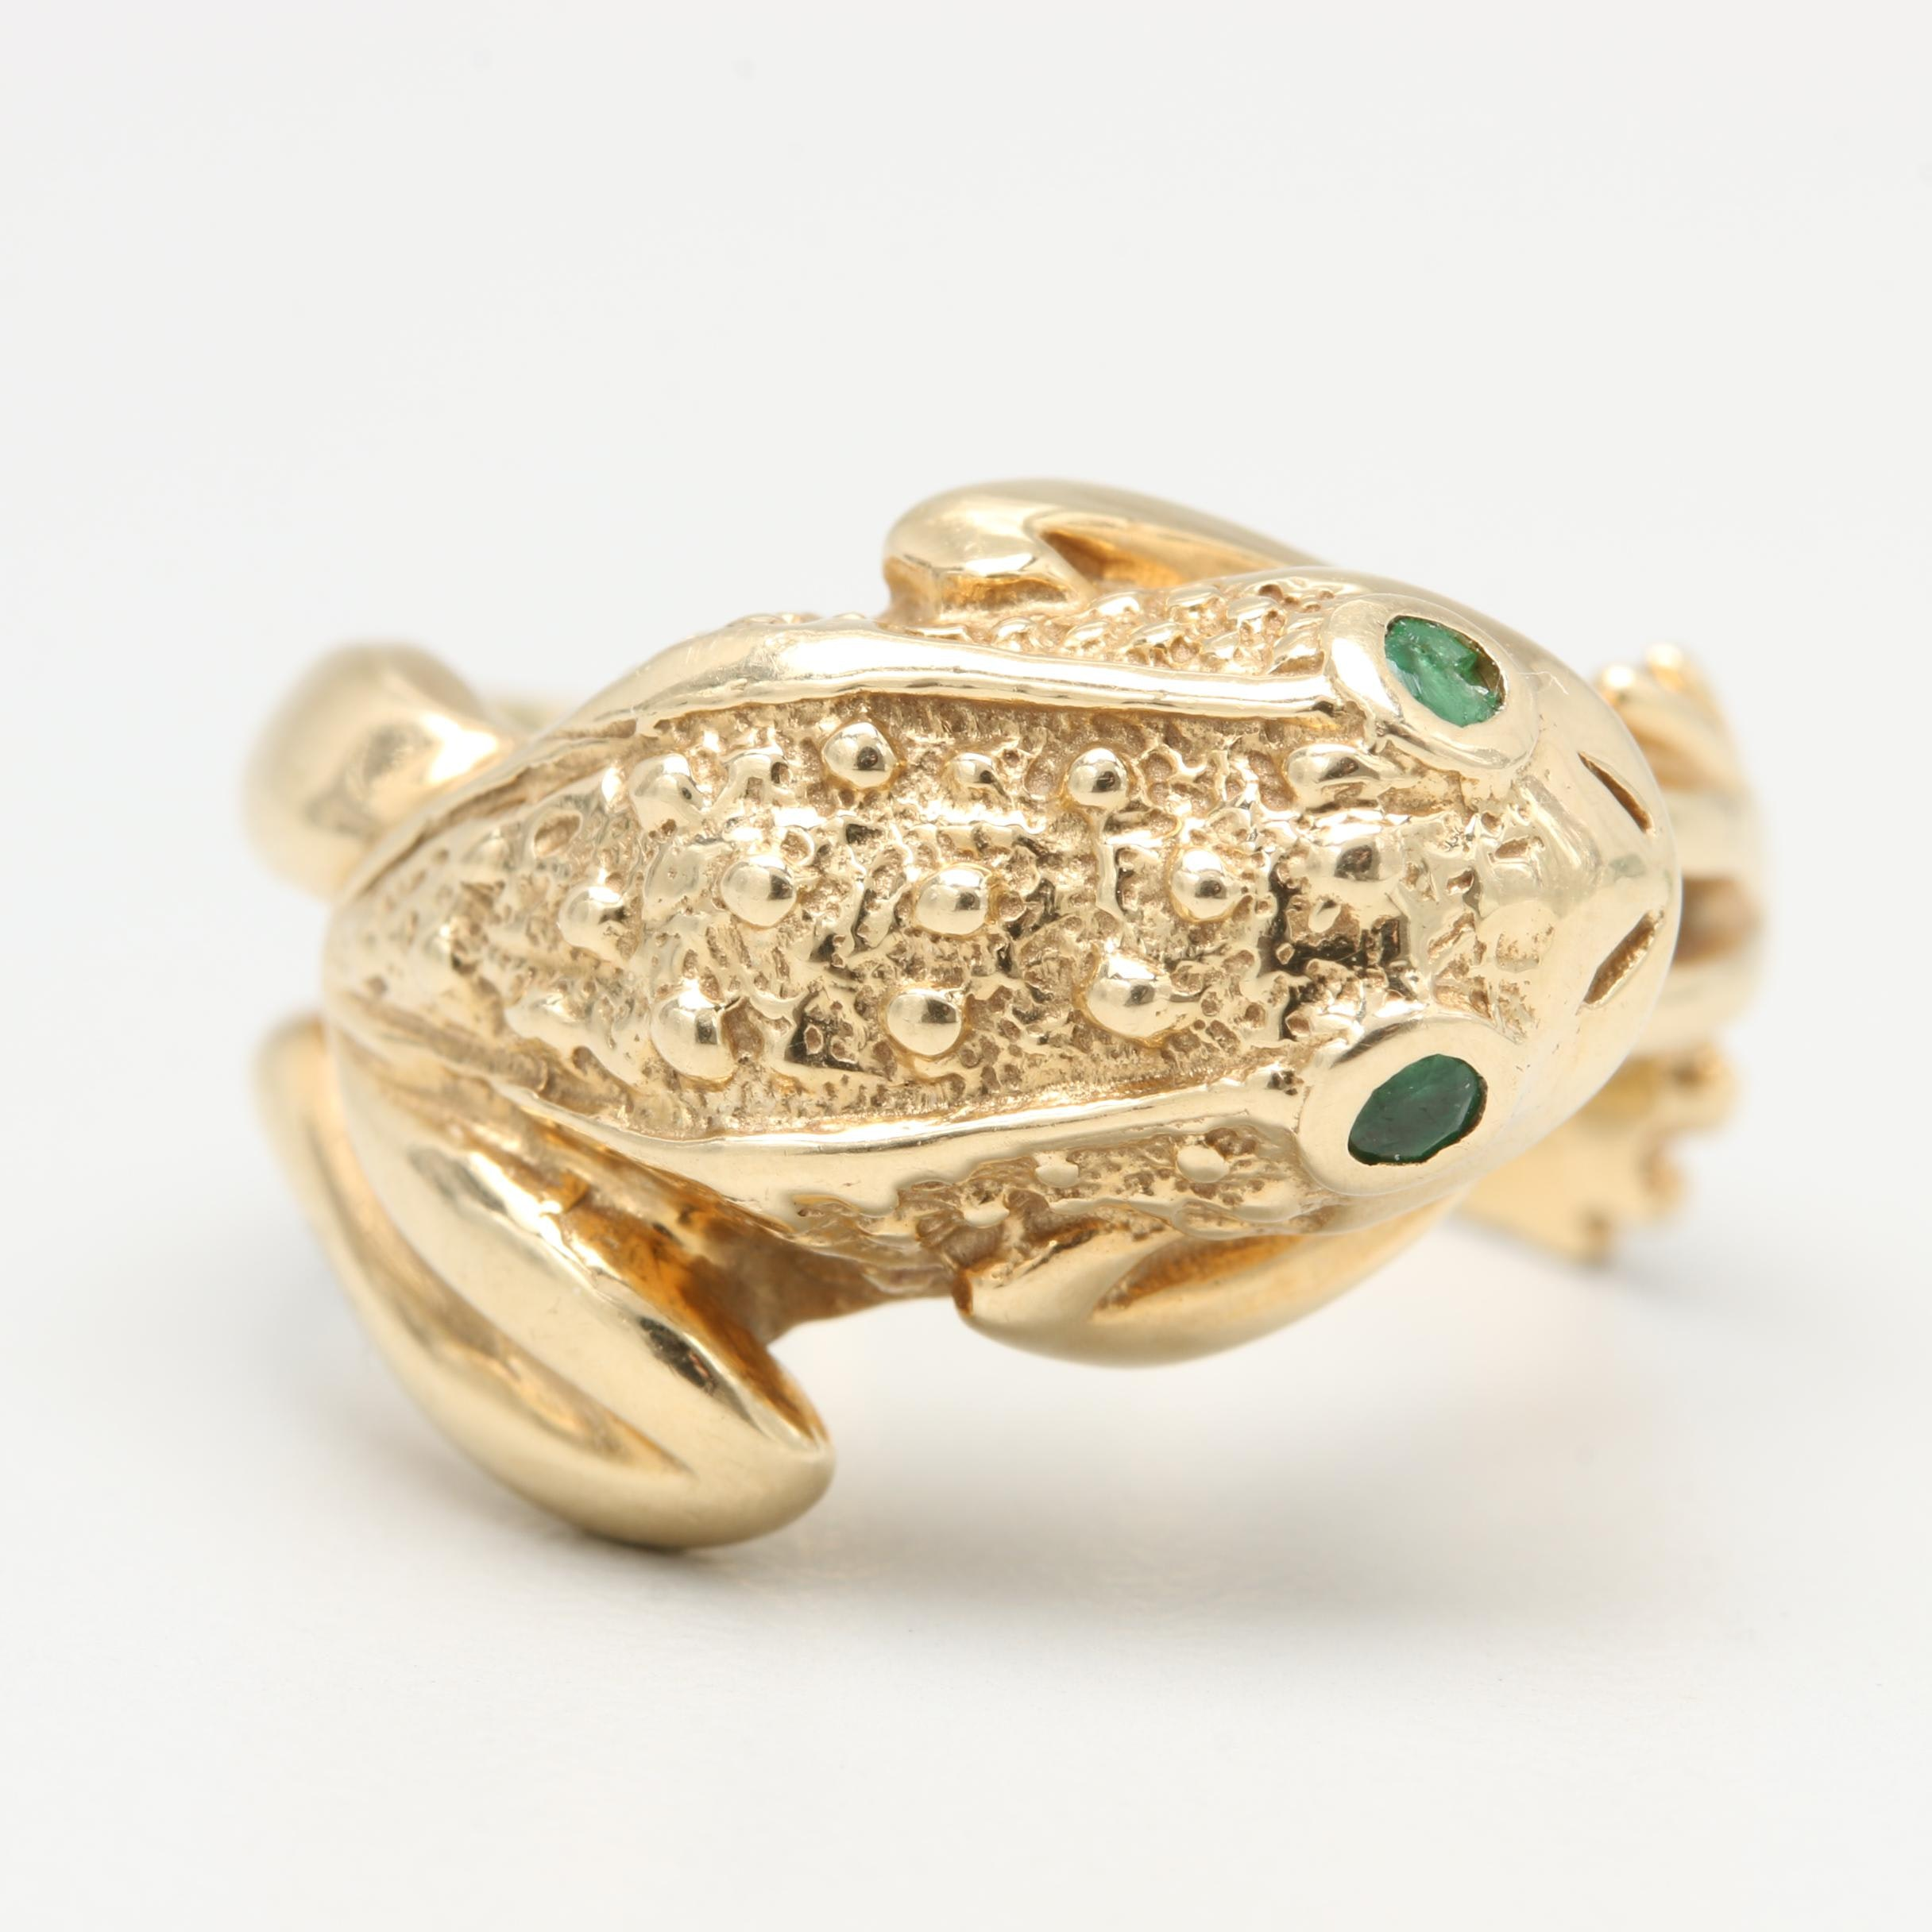 Hubertus Von Skal 14K Yellow Gold Emerald Ring